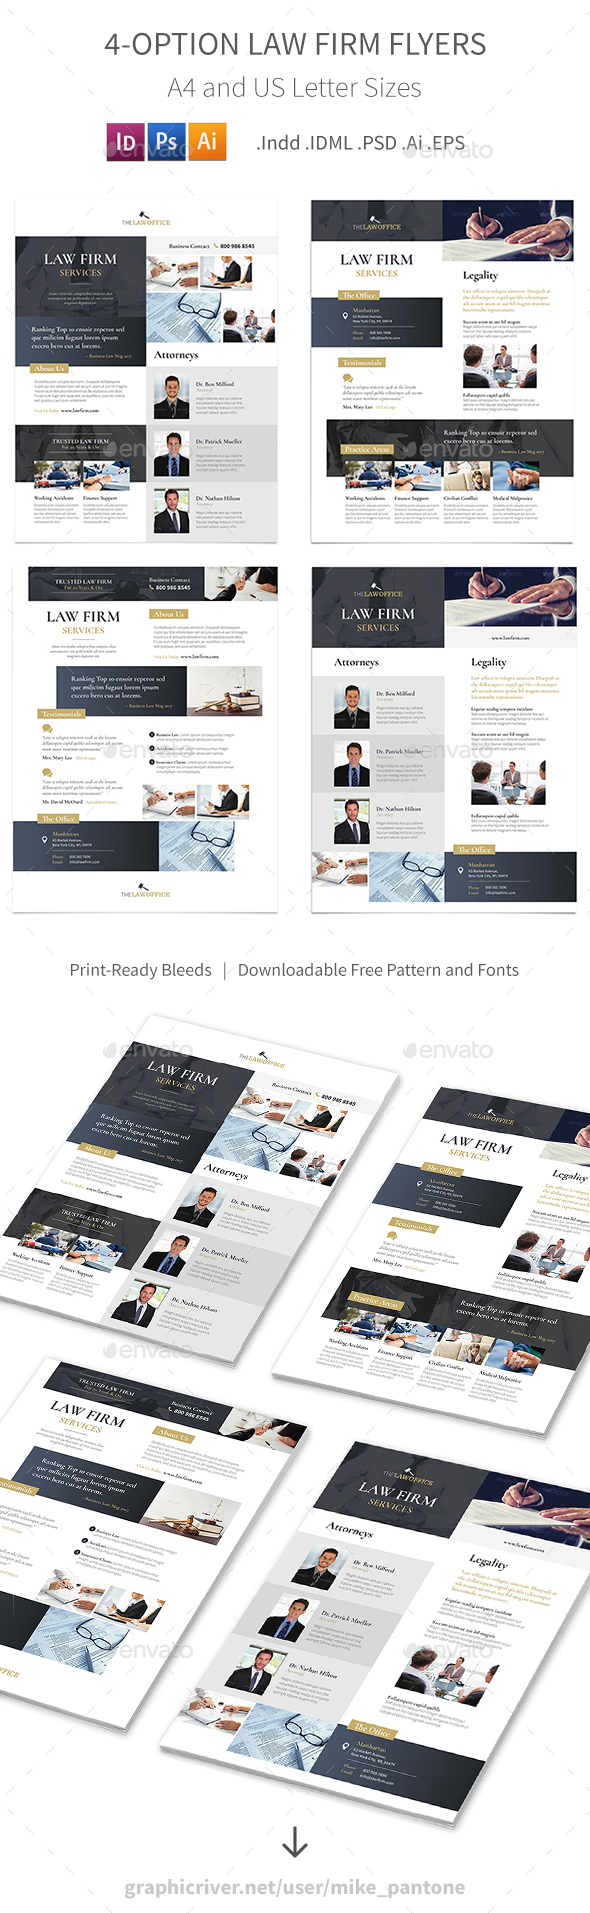 Law Firm Flyers – 4 Options - Corporate Flyers